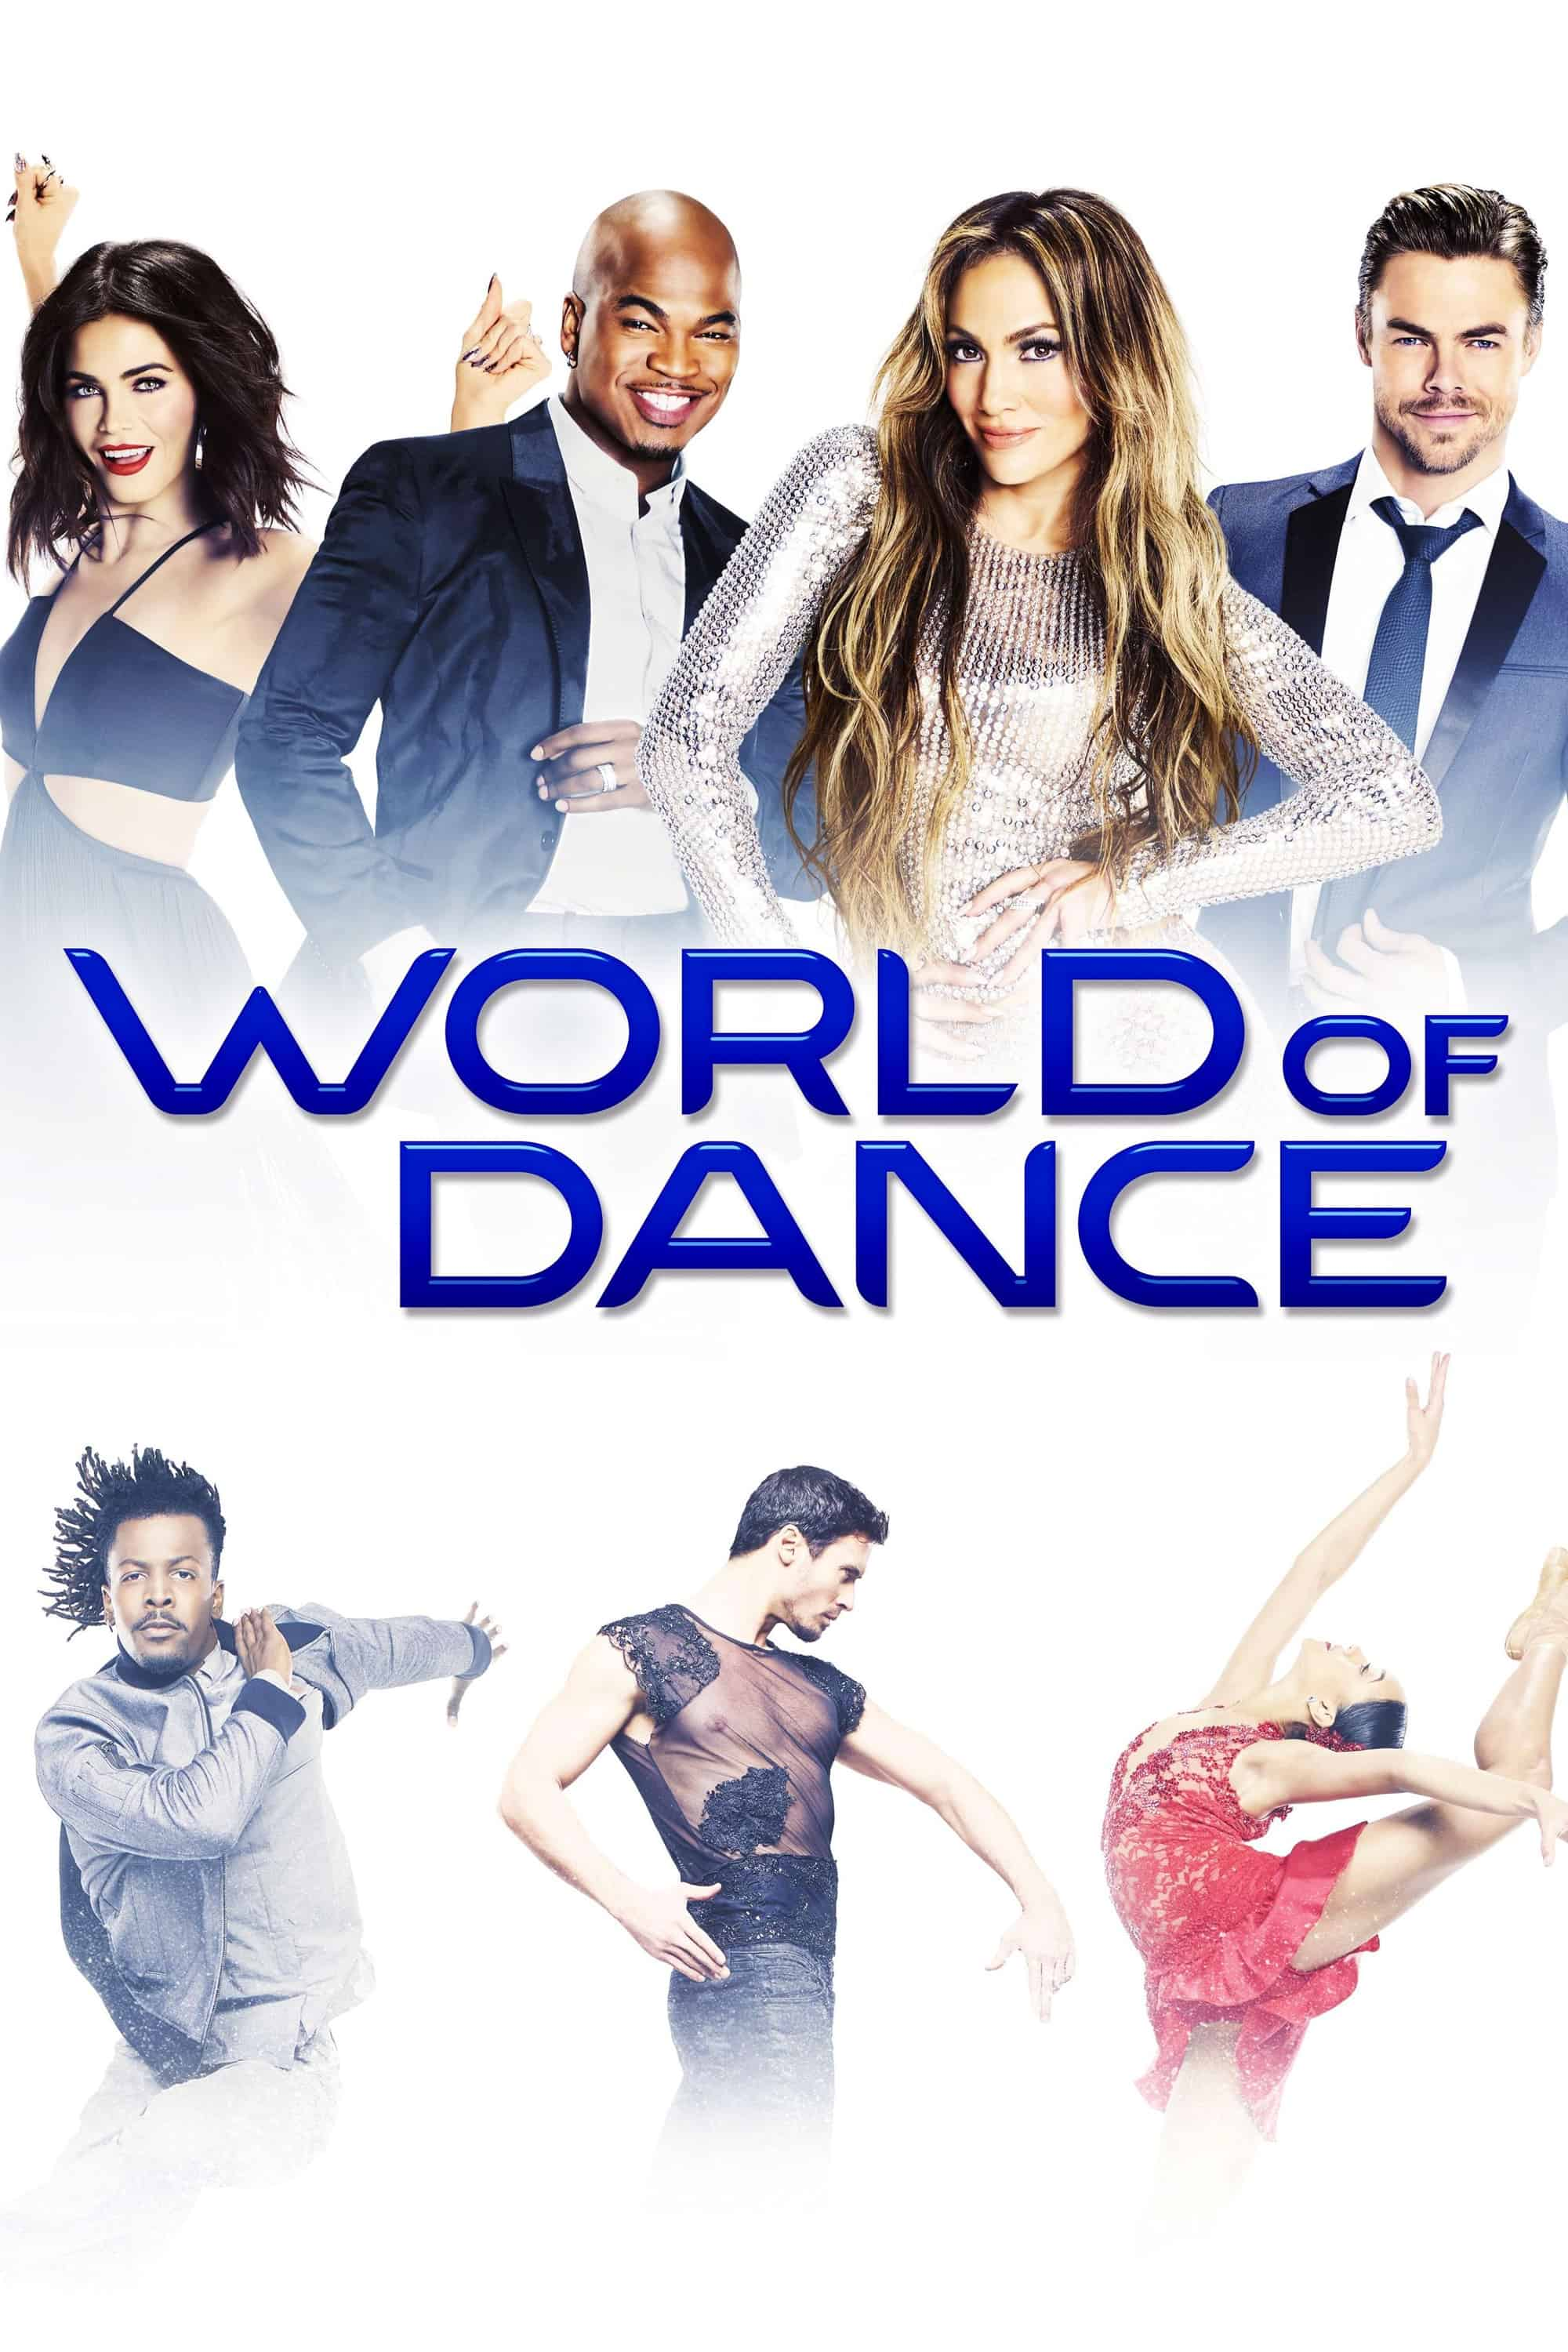 World of Dance, 2017